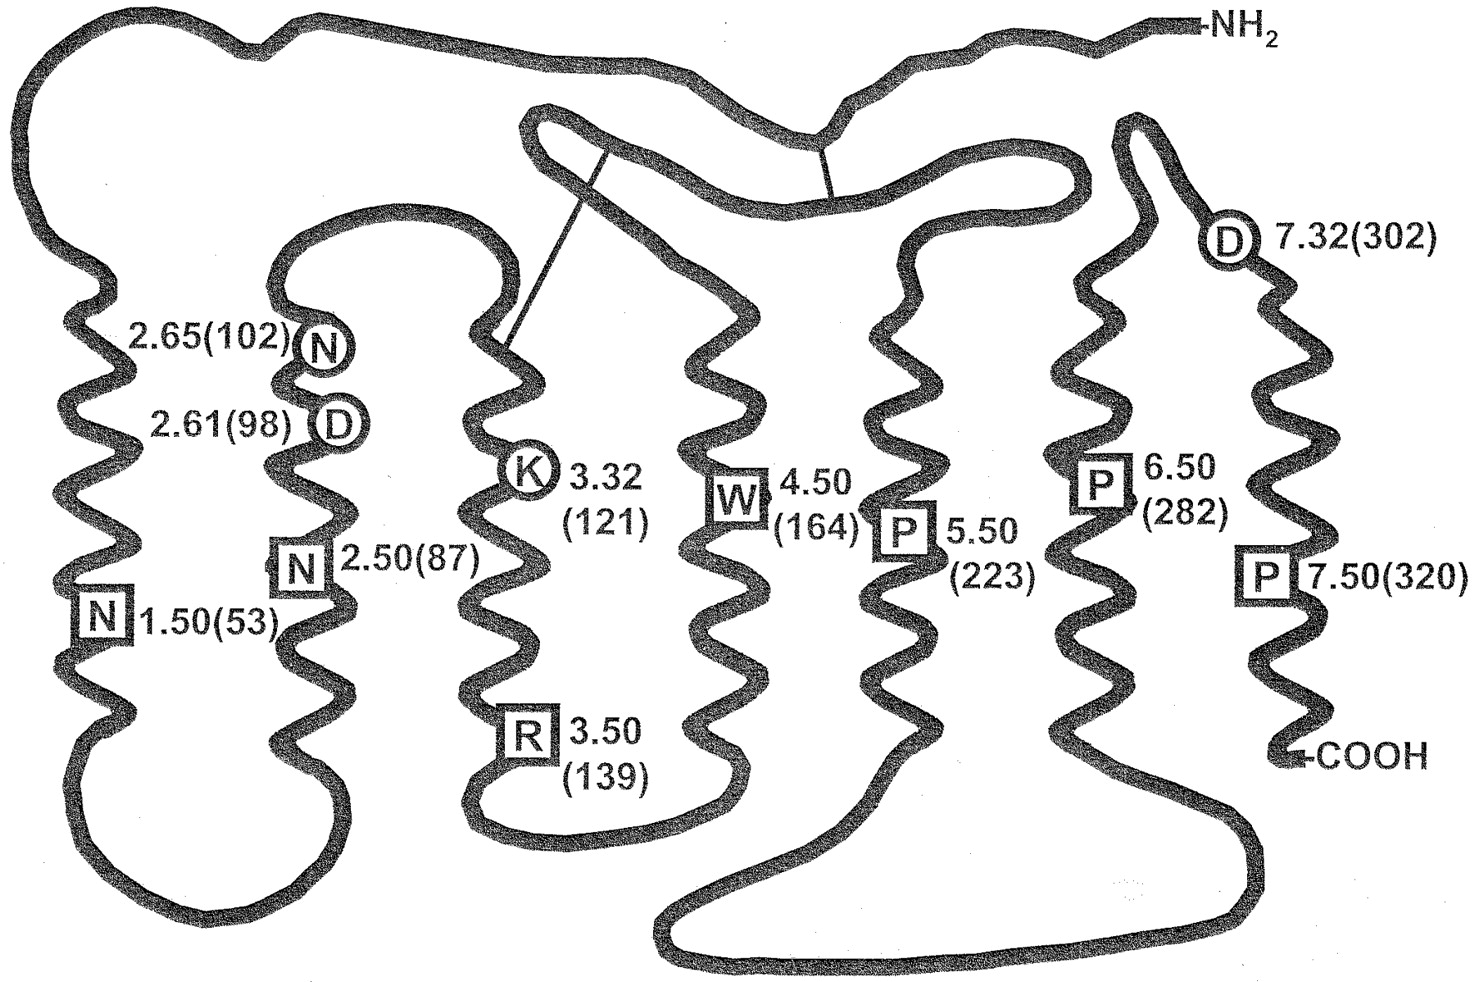 role of aspartate7 32 302 of the human gonadotropin releasing IPR Valve Location download figure